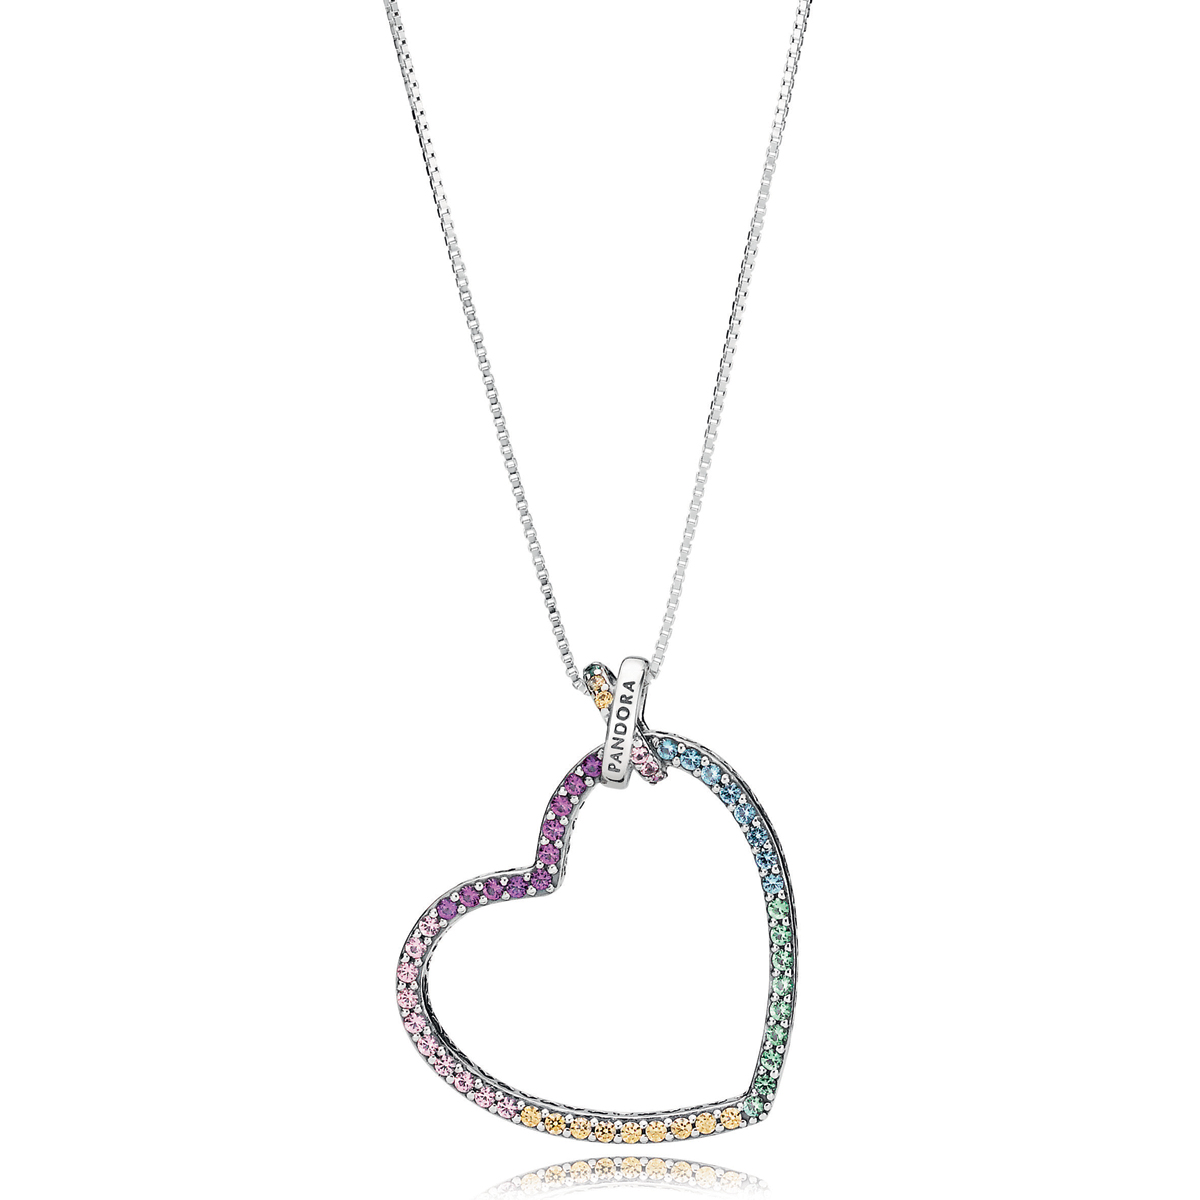 anna in heart as design netherlands wireframe made necklace shop on crowdyhouse ruiter designed by silver tjielp